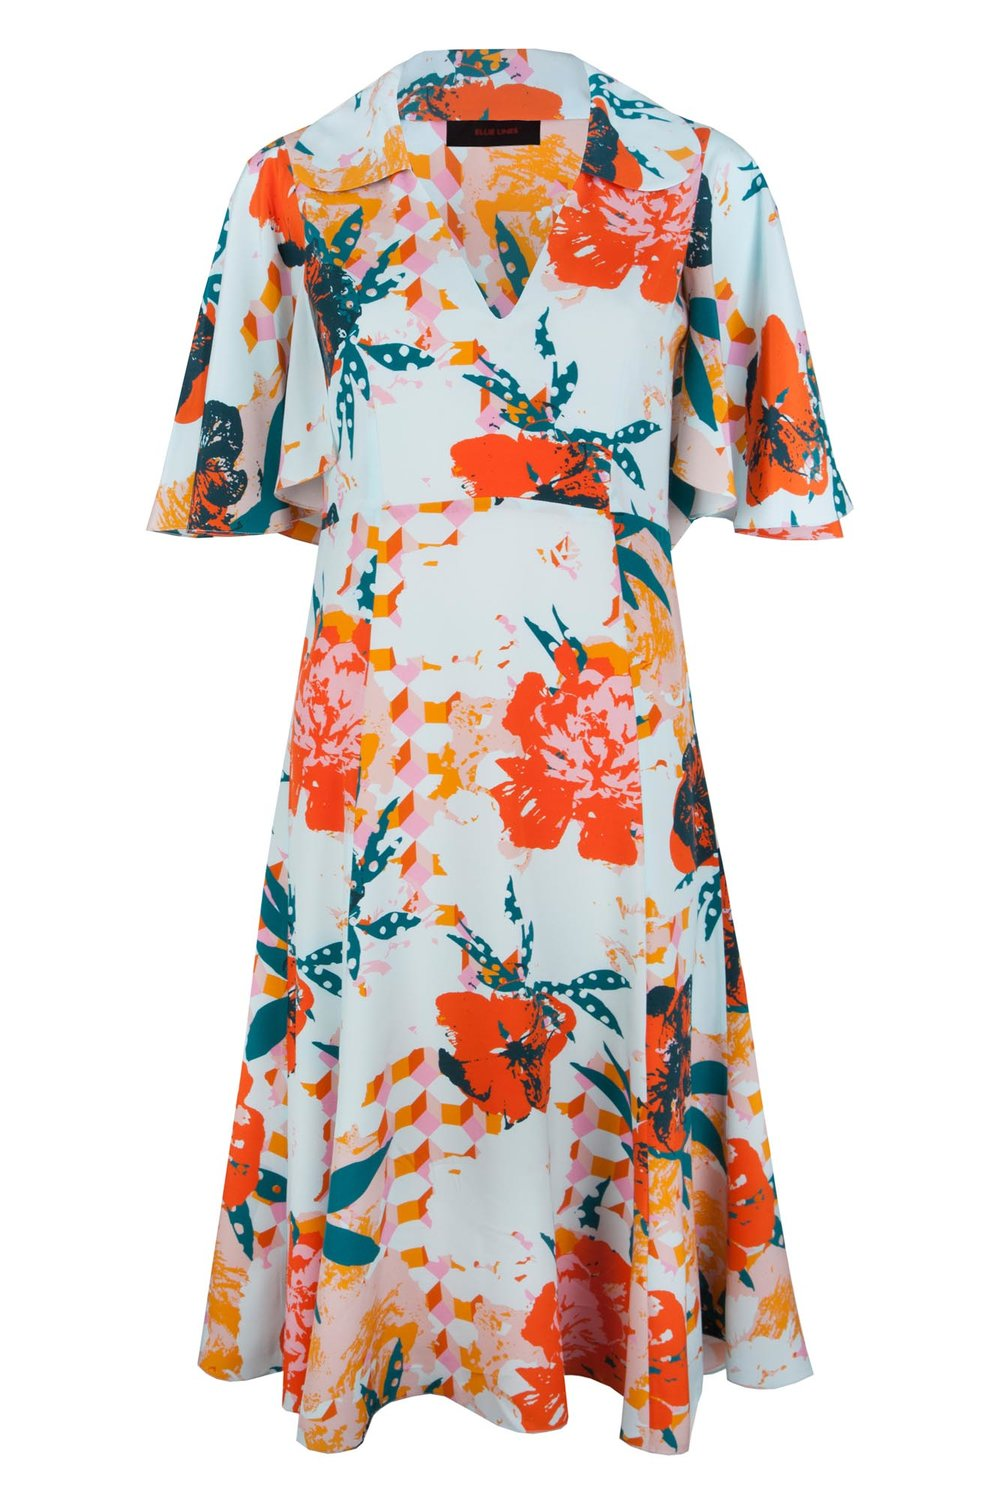 Designer flower print dress uk